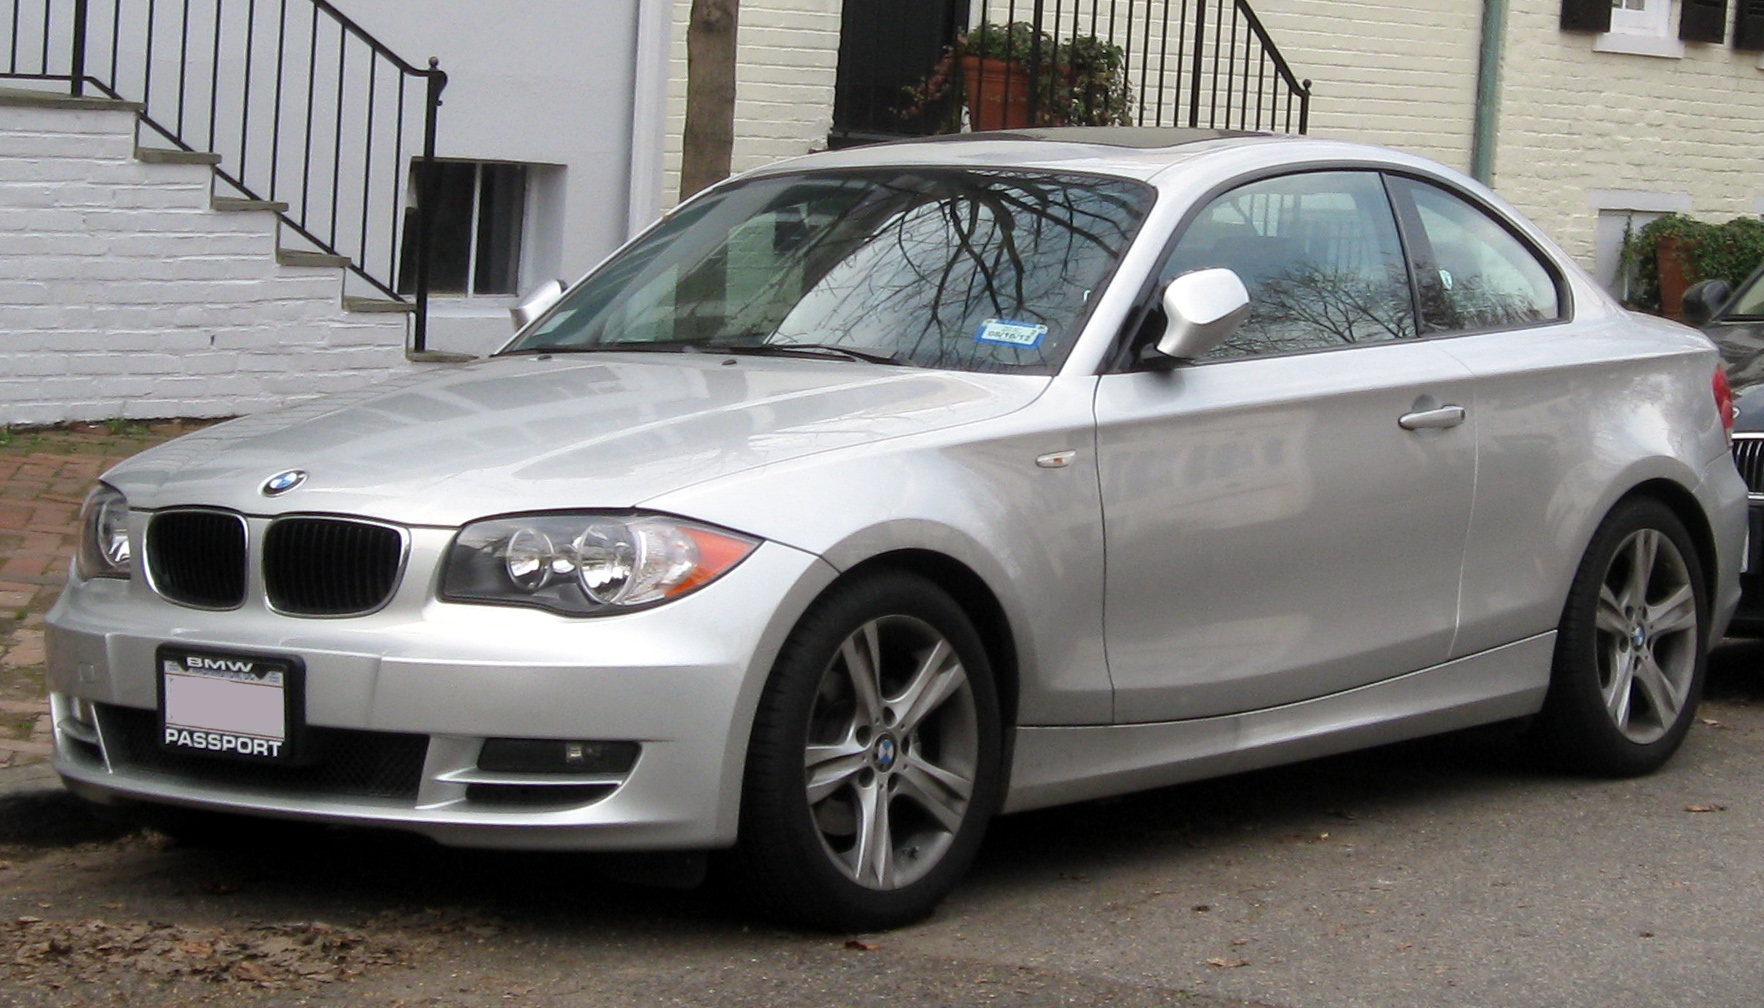 FileBMW Series Coupe Jpg Wikimedia Commons - Bmw 1 series usa